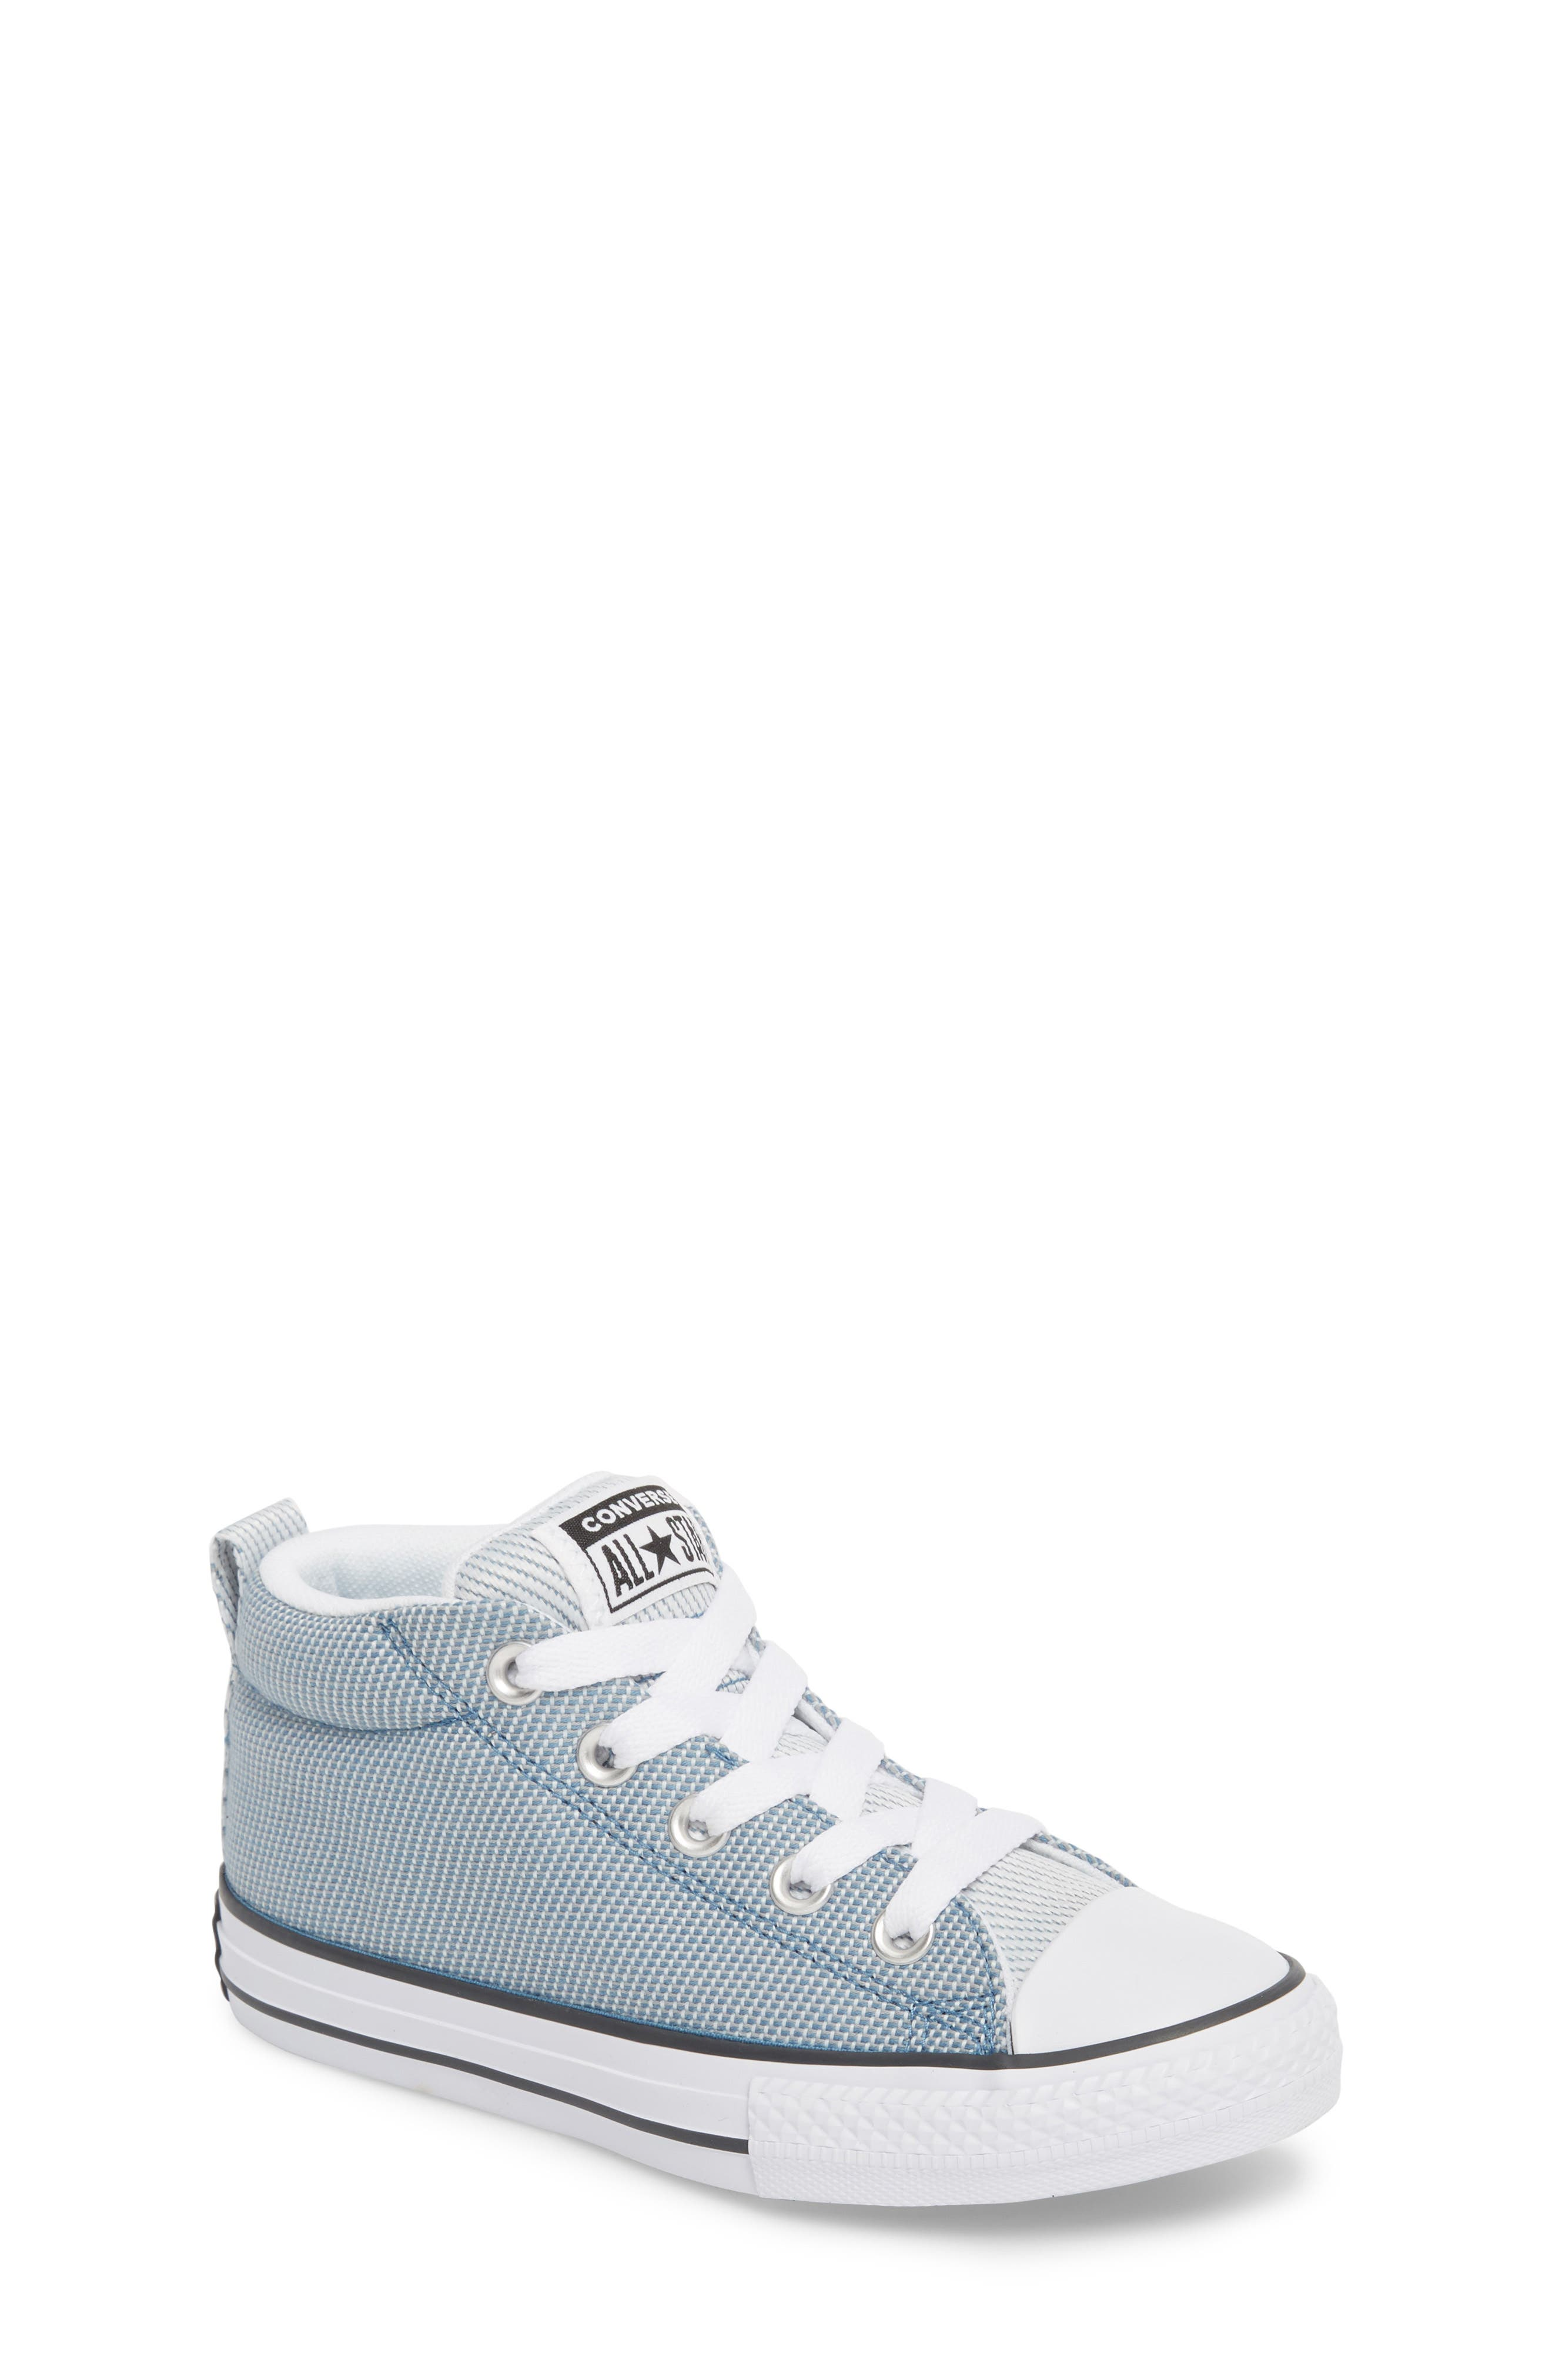 Chuck Taylor<sup>®</sup> All Star<sup>®</sup> Woven Street Mid Sneaker,                             Main thumbnail 1, color,                             Aegean Storm